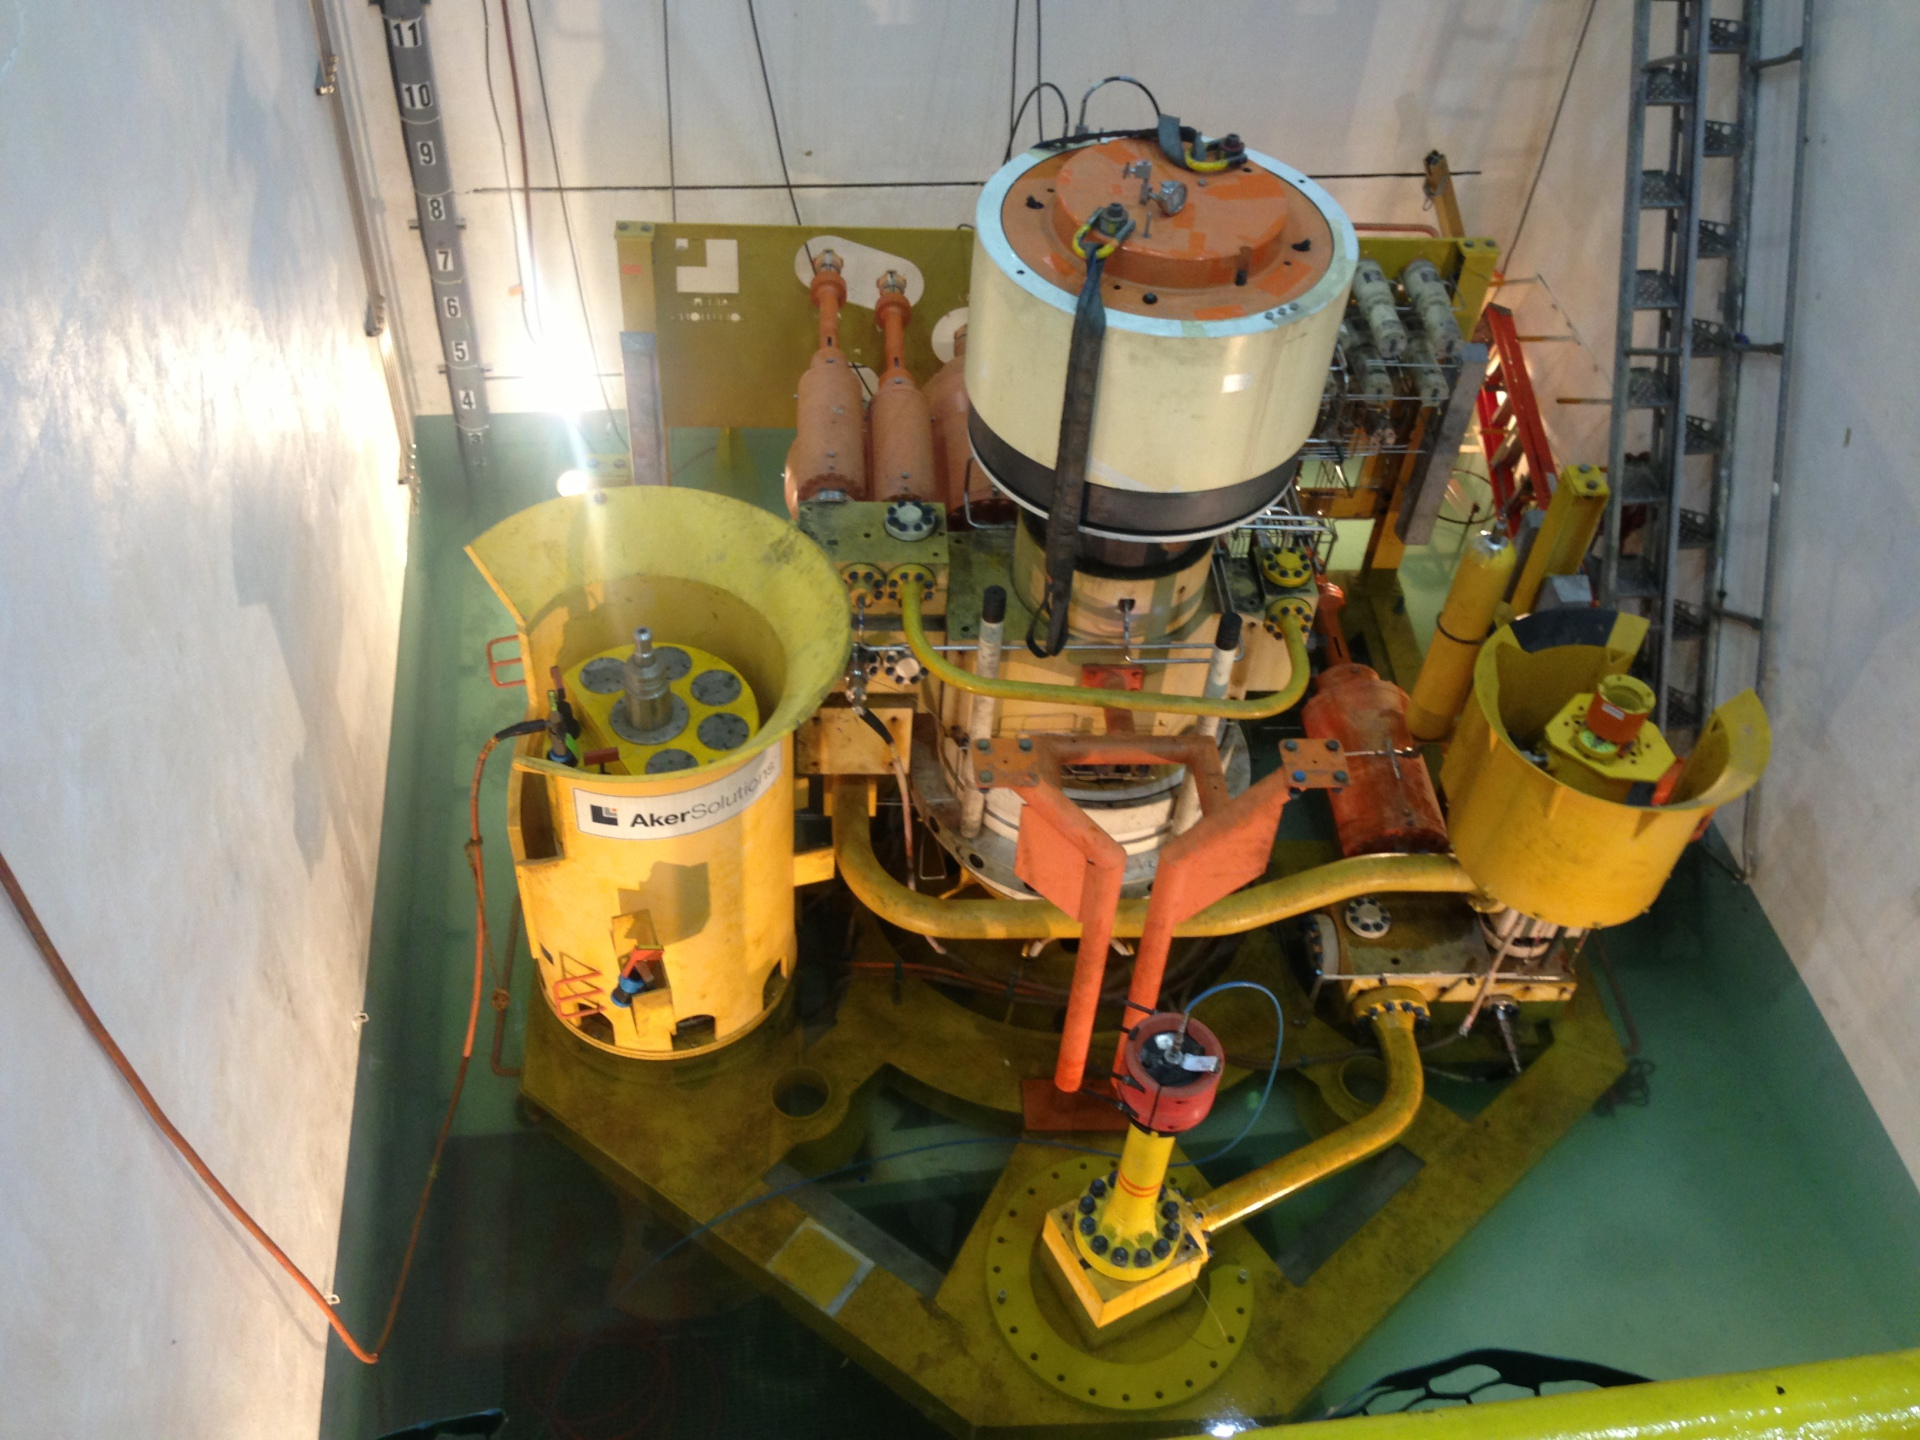 Subsea, XMT, Wellhead, Inspection, Refurbishment, Spool, PMV, PWV, XOV, Production, Connector, Testing, EFAT, FAT, SIT, System, Integration, Testing, Gas, Flow, Loop